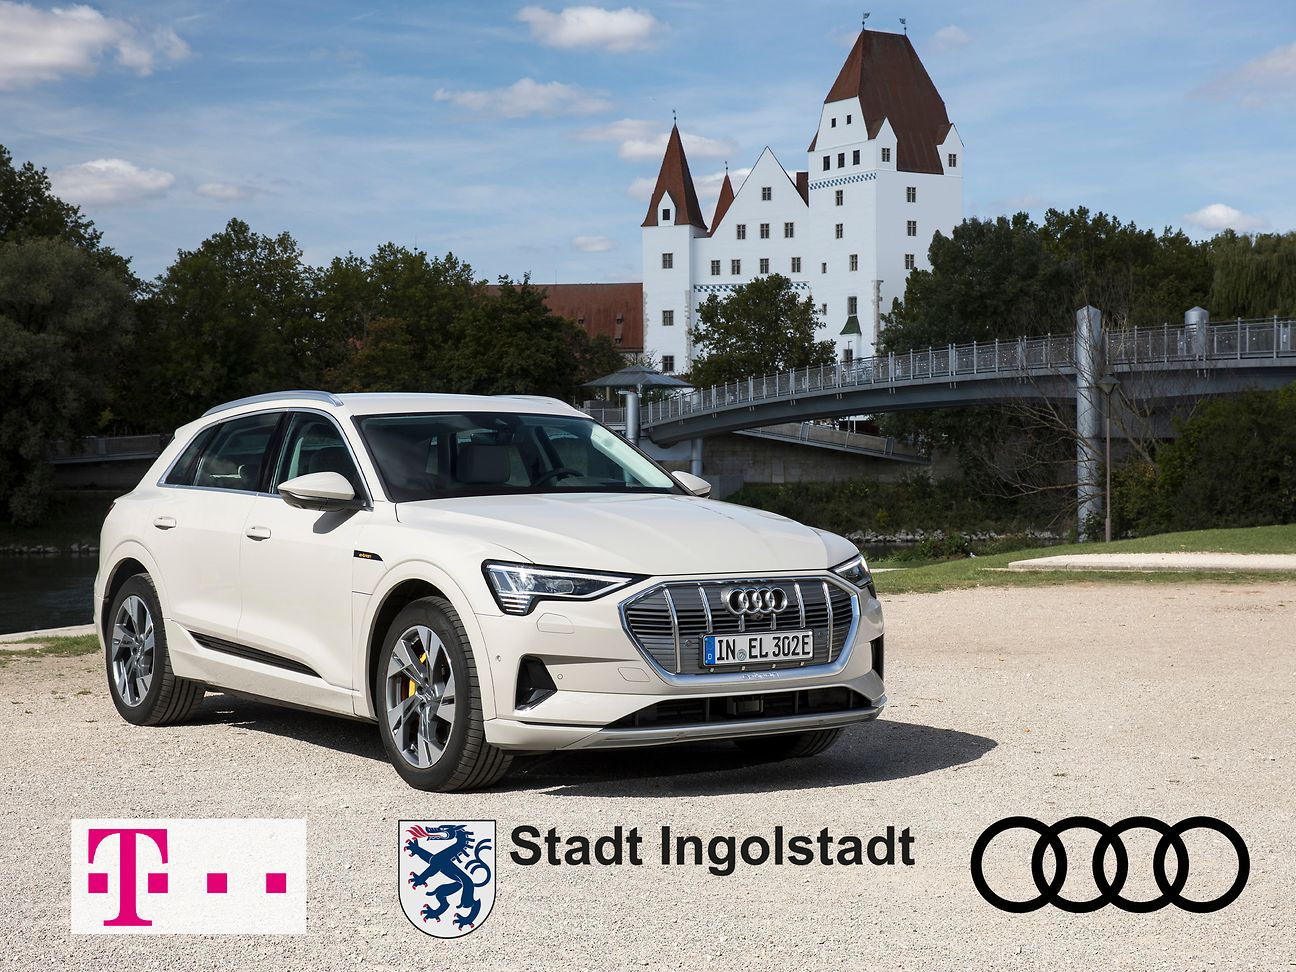 5G cooperation: Audi, the city of Ingolstadt and Telekom.